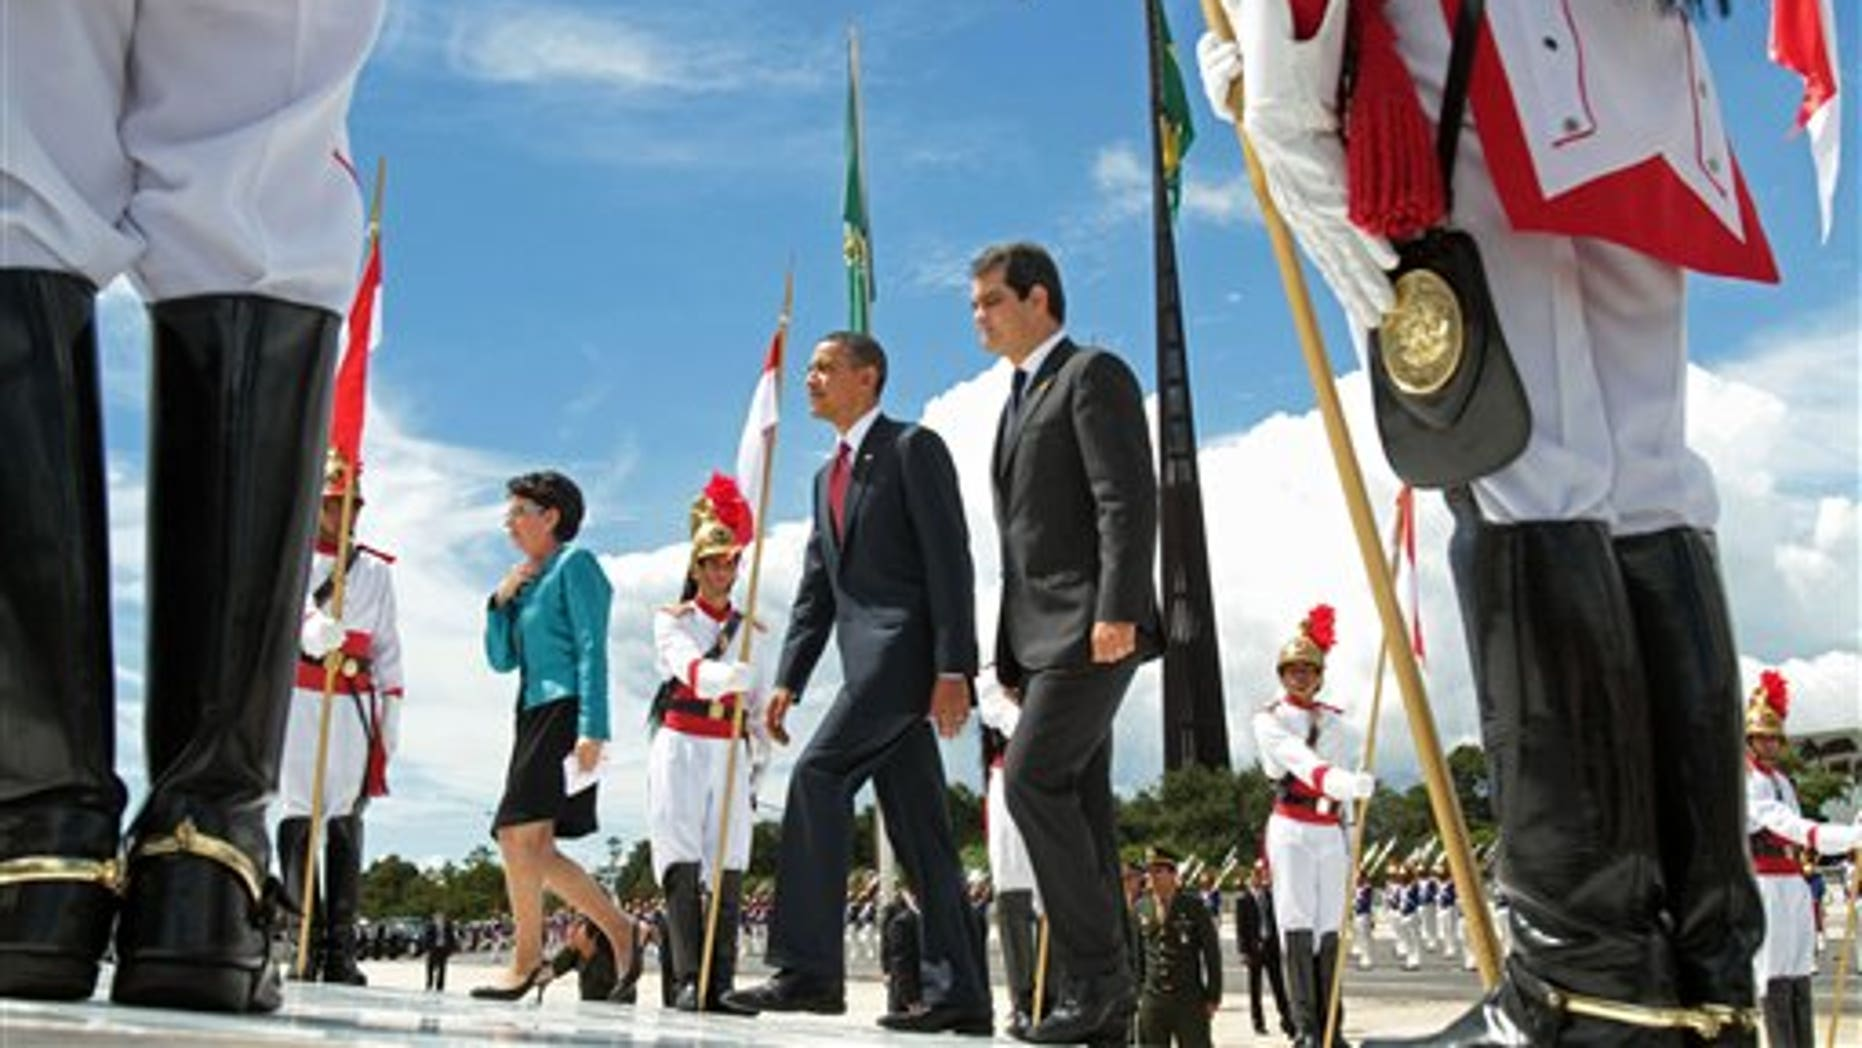 U.S. President Barack Obama, center, arrives to Planalto palace in Brasilia, Brazil, Saturday March 19, 2011. Obama arrived in Brazil on Saturday for the start of a three-country, five-day tour of Latin America. (AP Photo/Eraldo Peres)